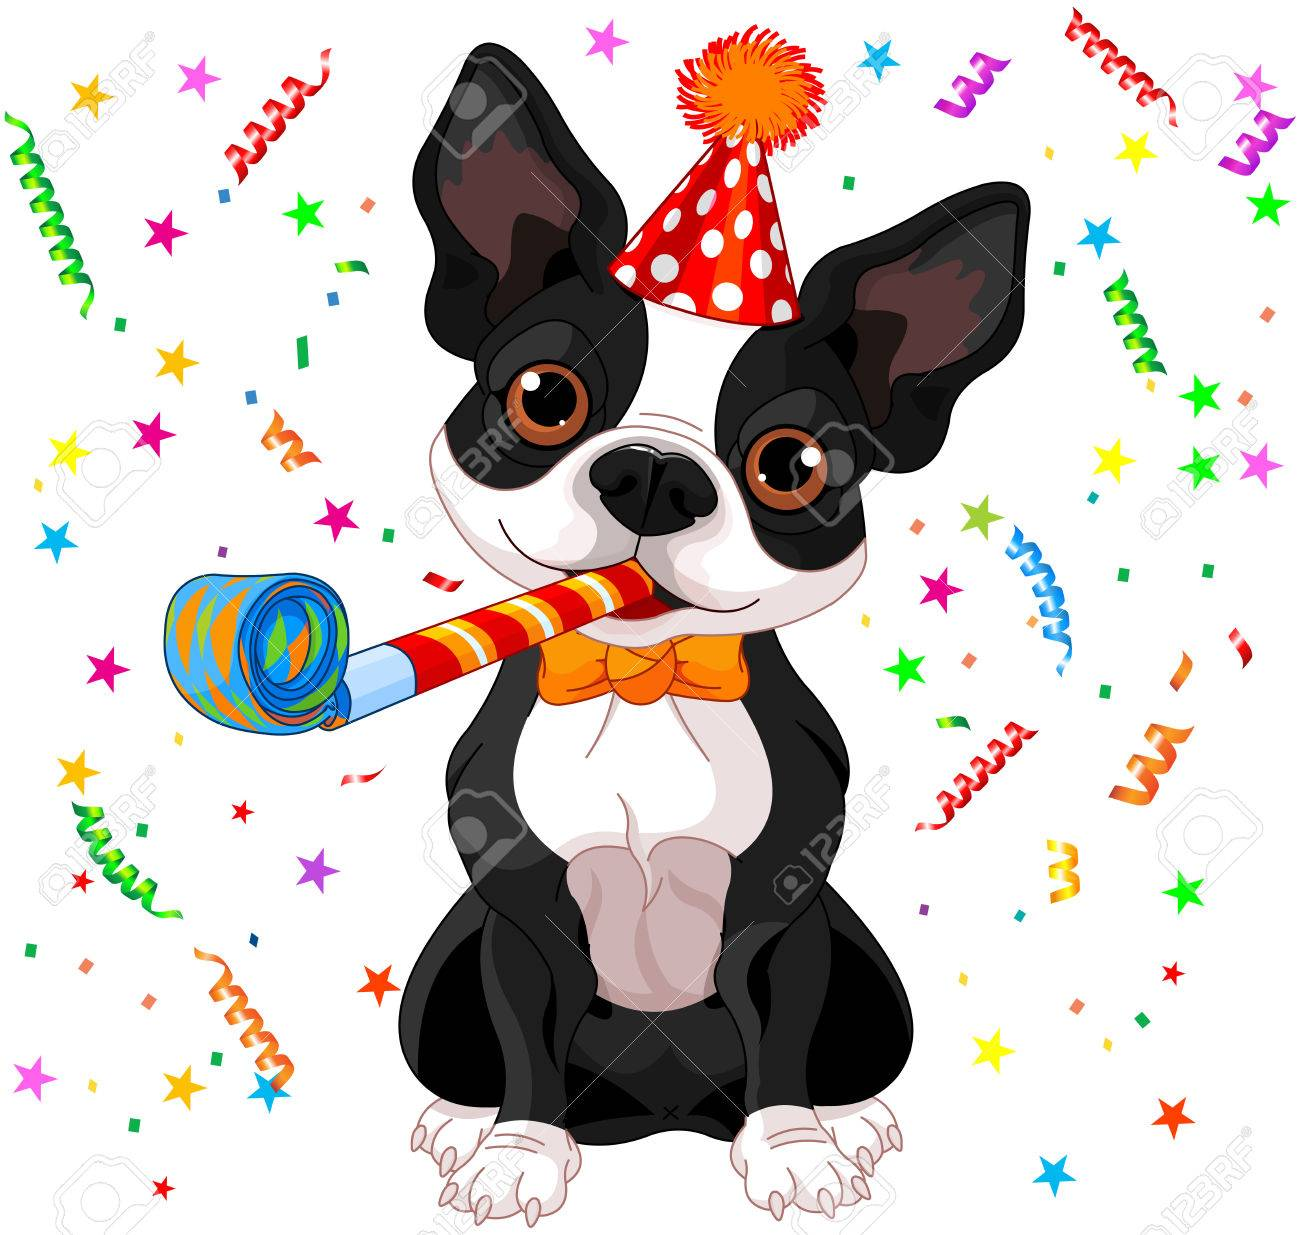 Conditionnement ou automatisme ?  - Page 10 35588778-illustration-of-cute-boston-terrier-celebrating